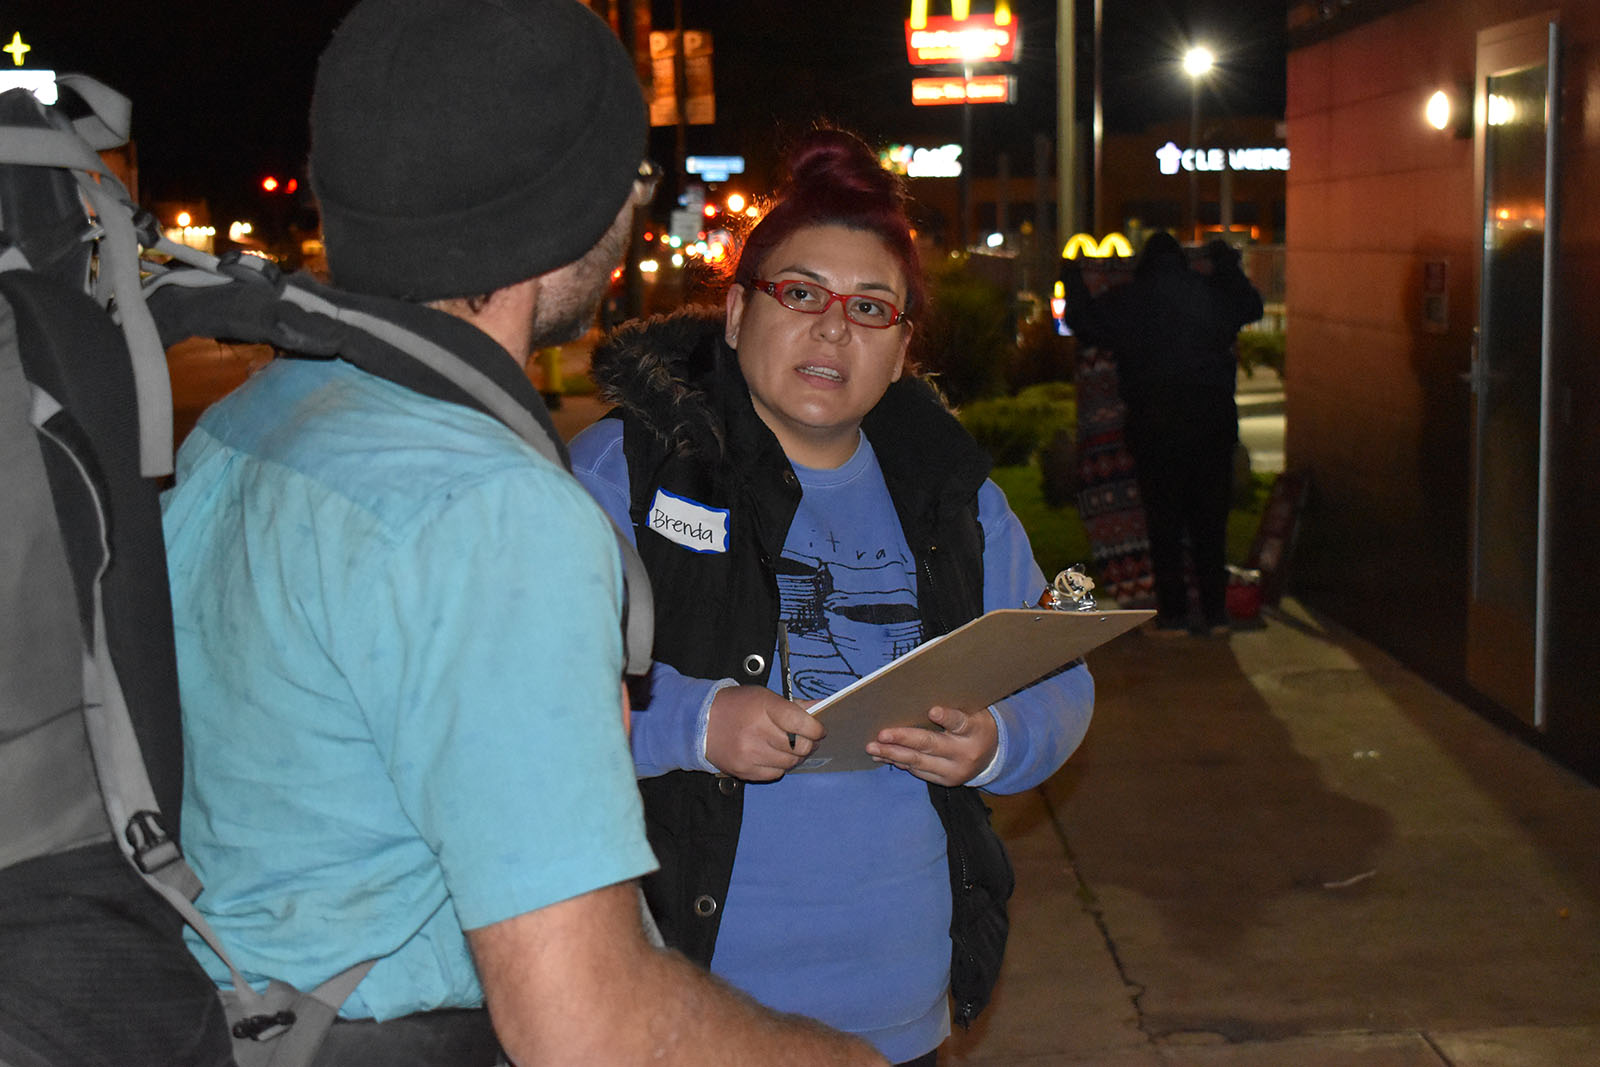 Brenda Velasco, a human services specialist with the County Northeast Family Resource Center, talks to a homeless man on University Ave. in Hillcrest.